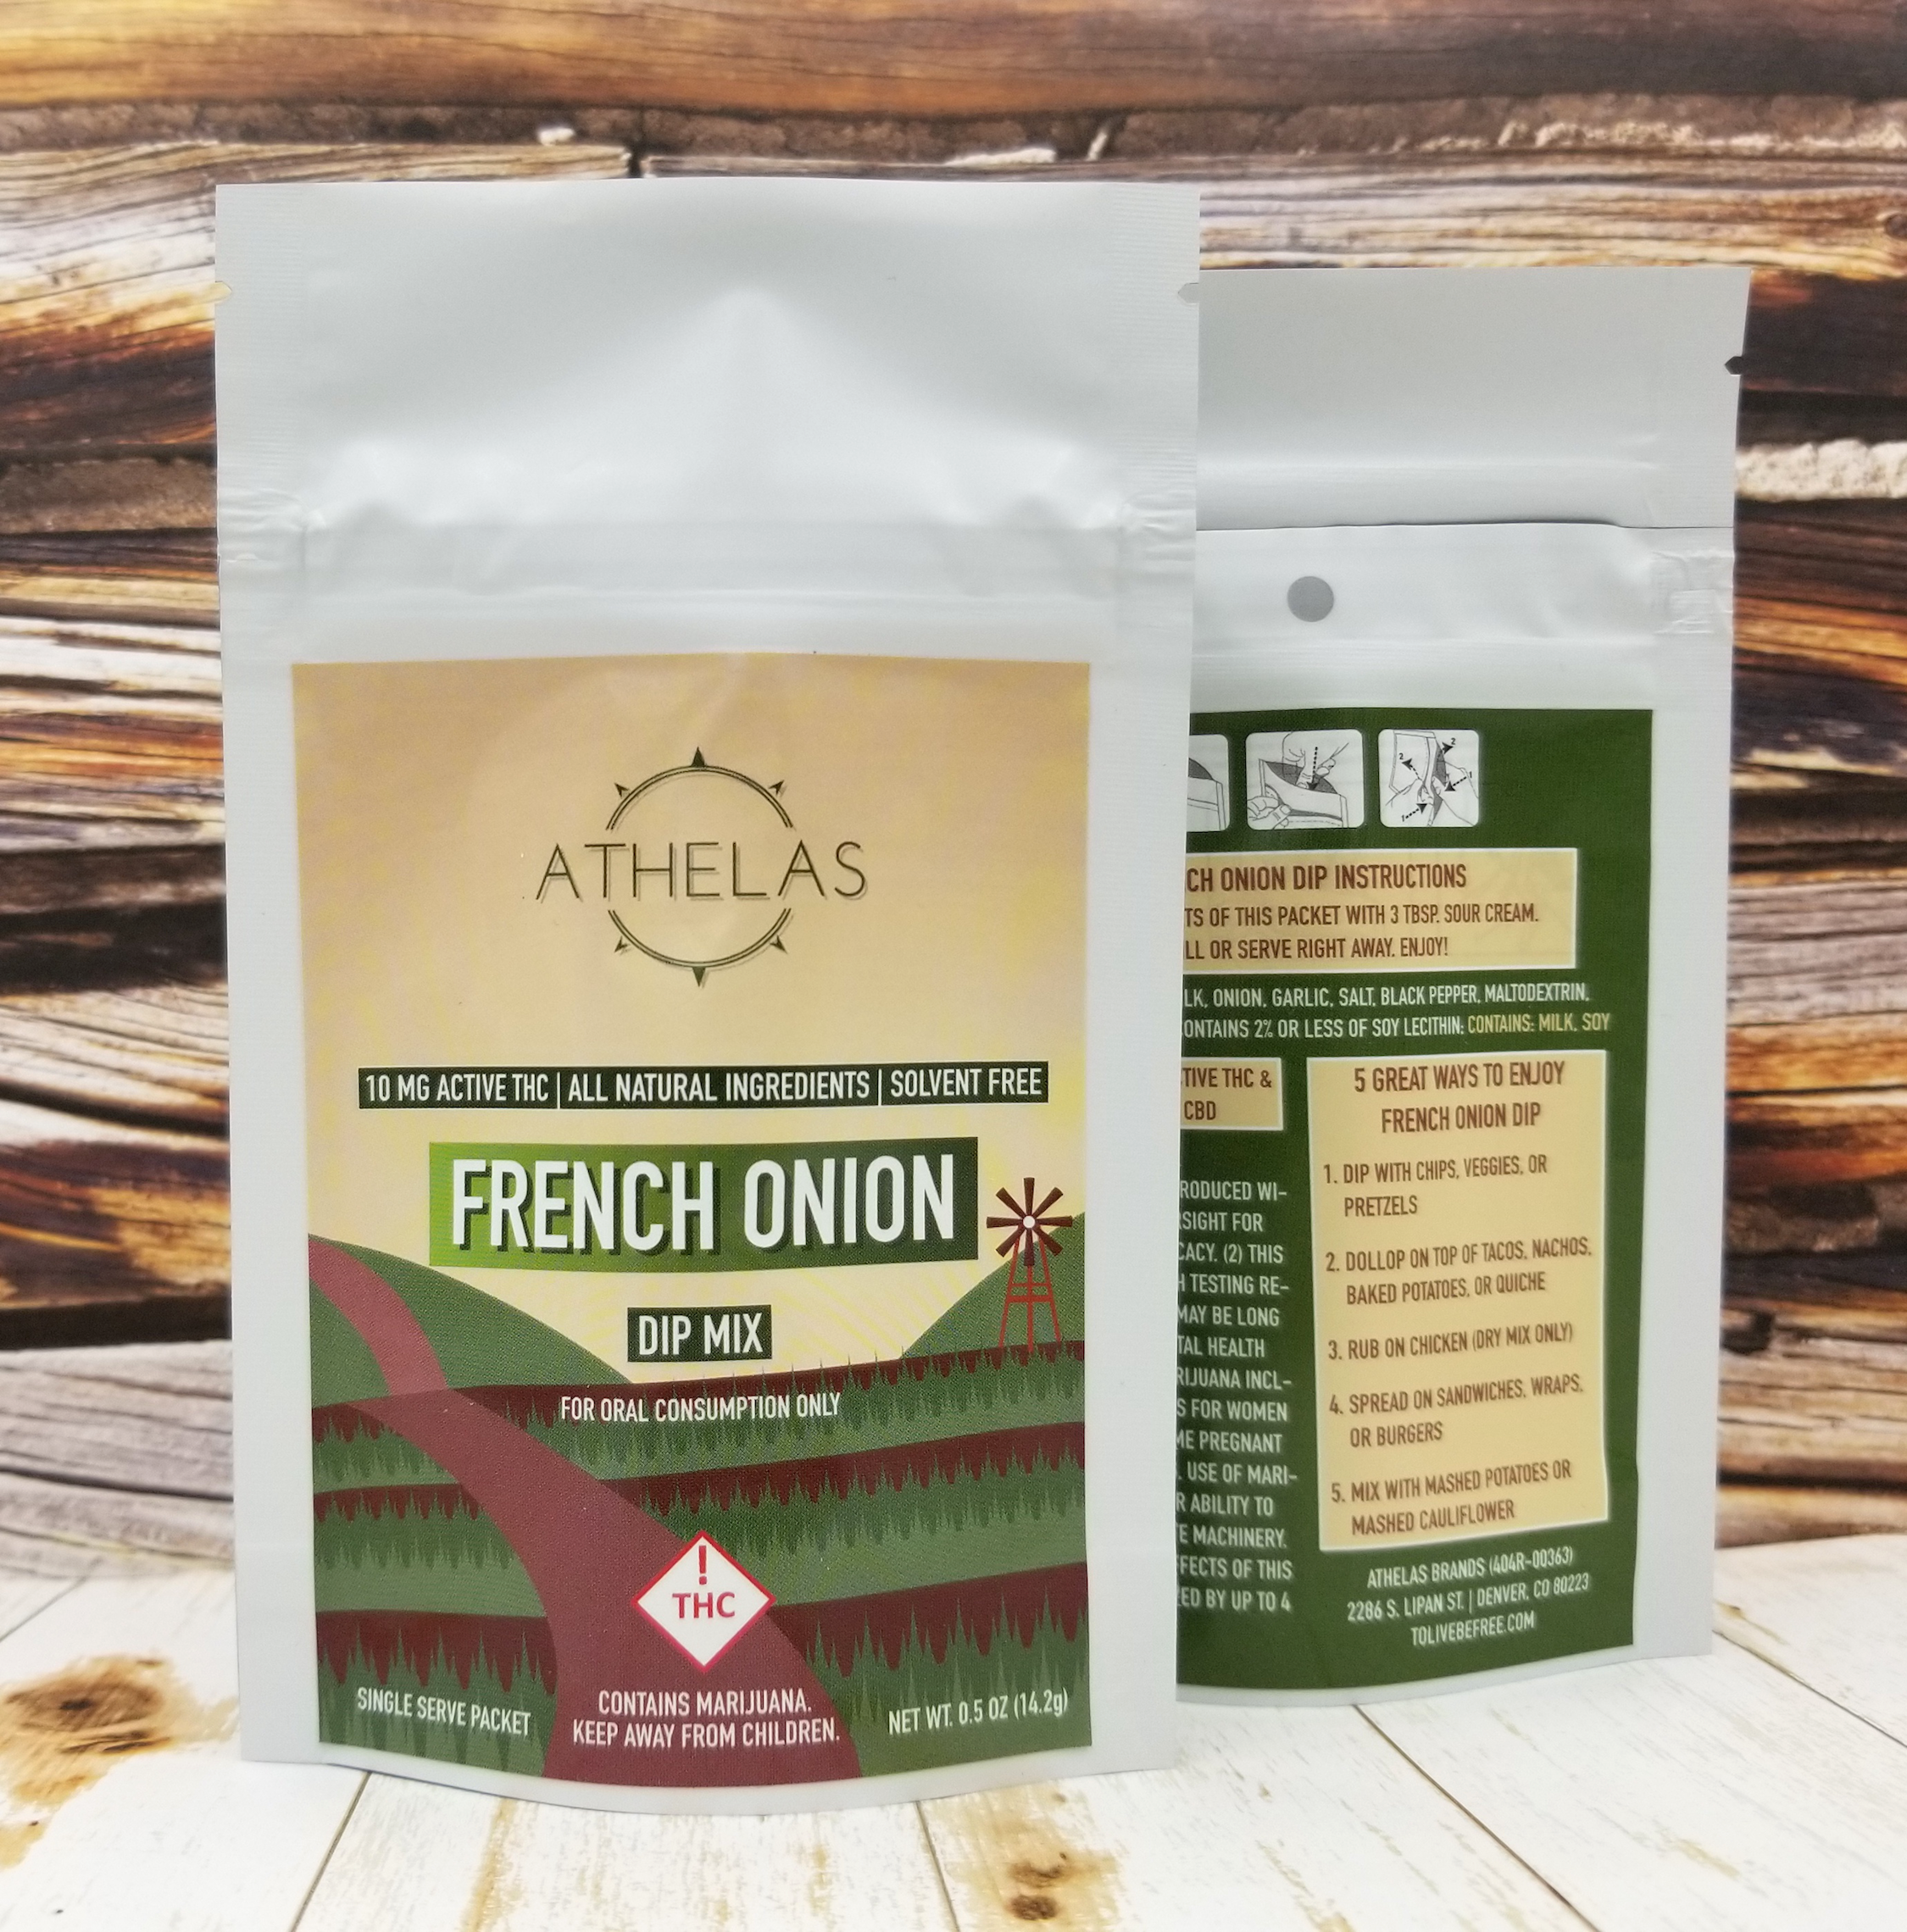 French Onion Dip MIx - 10 mg